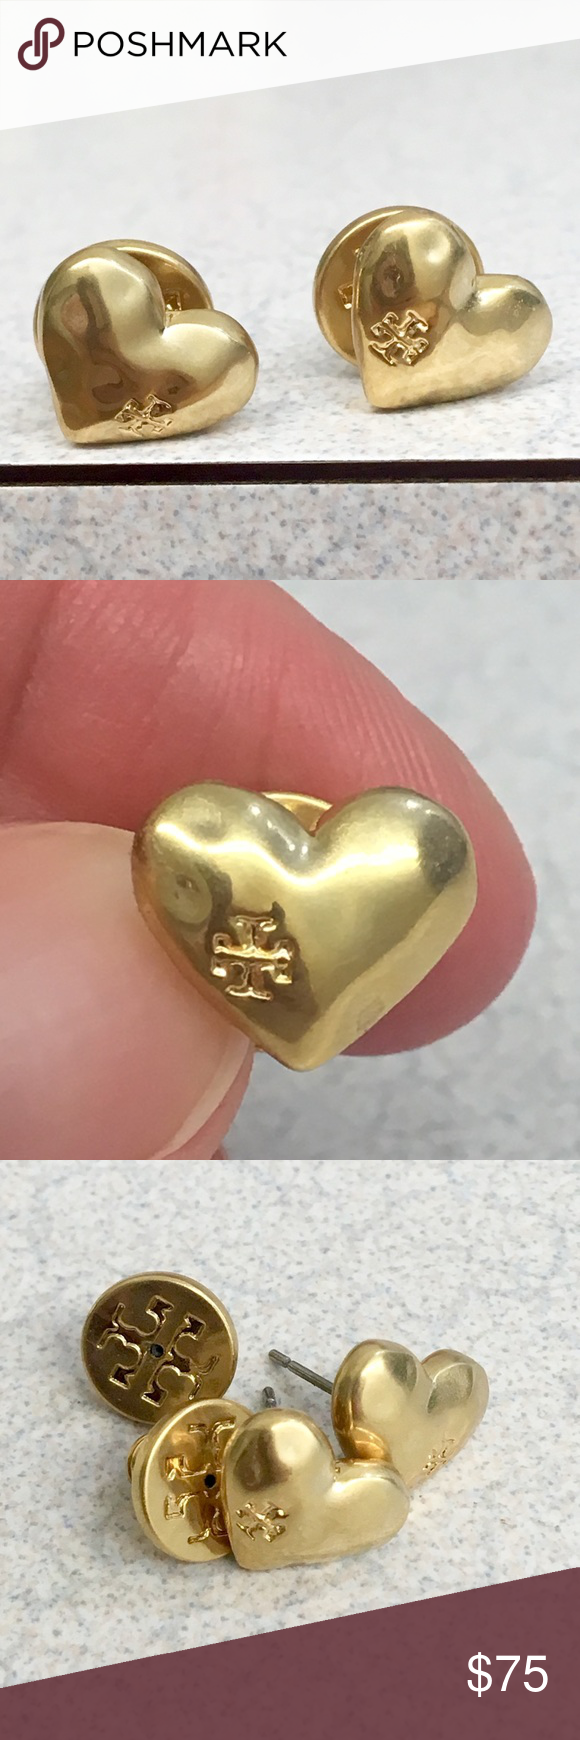 f65c361c5 Gorgeous NWOT Tory Burch Heart ❤ Stud Earrings! Brass with a vintage-gold  finish and comes accented with an engraved logo. Post closure Height: 0.44